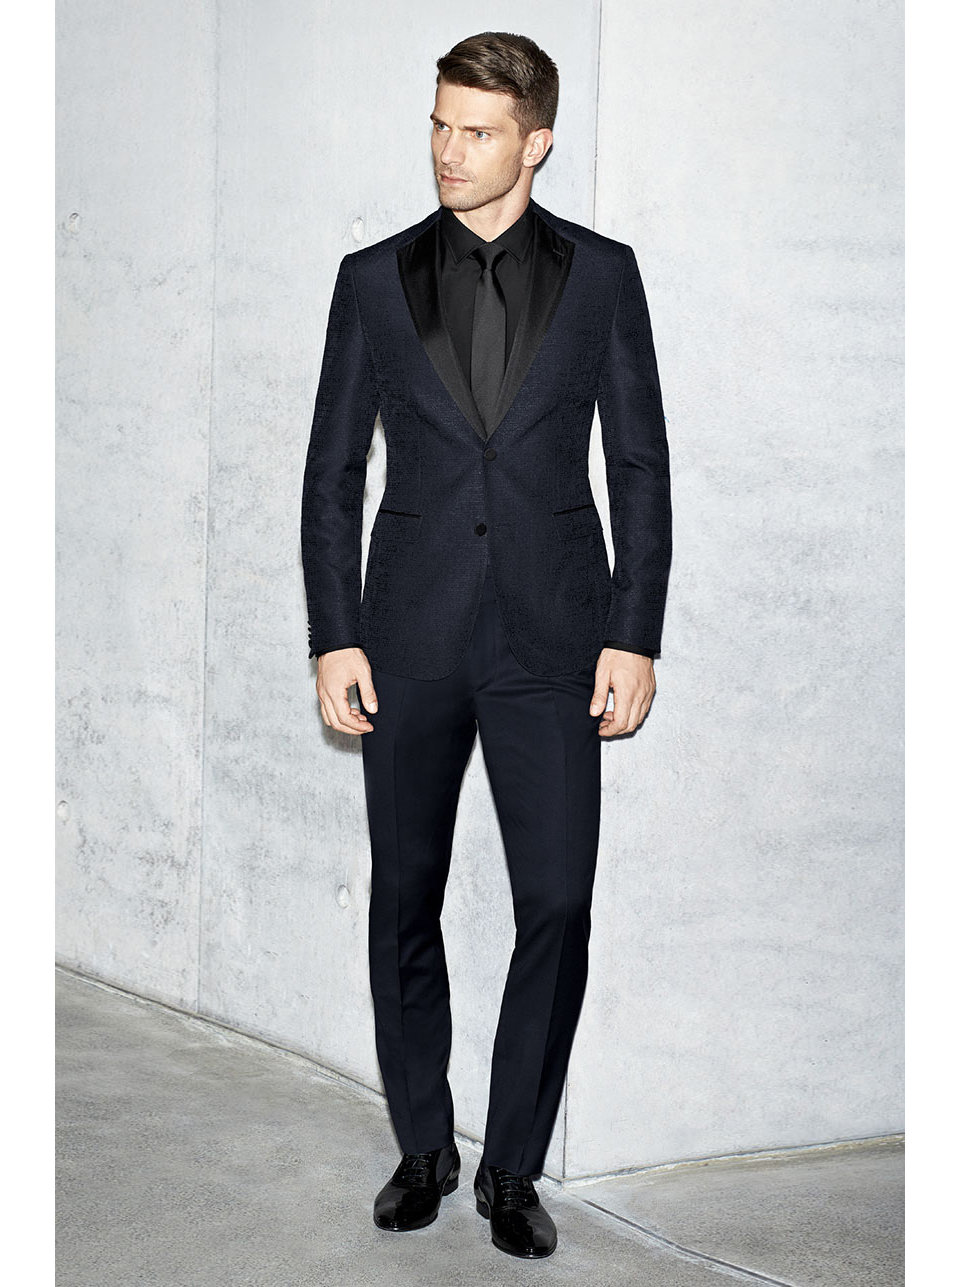 Dark blue tailored jacket, black shirt and black tie by BOSS